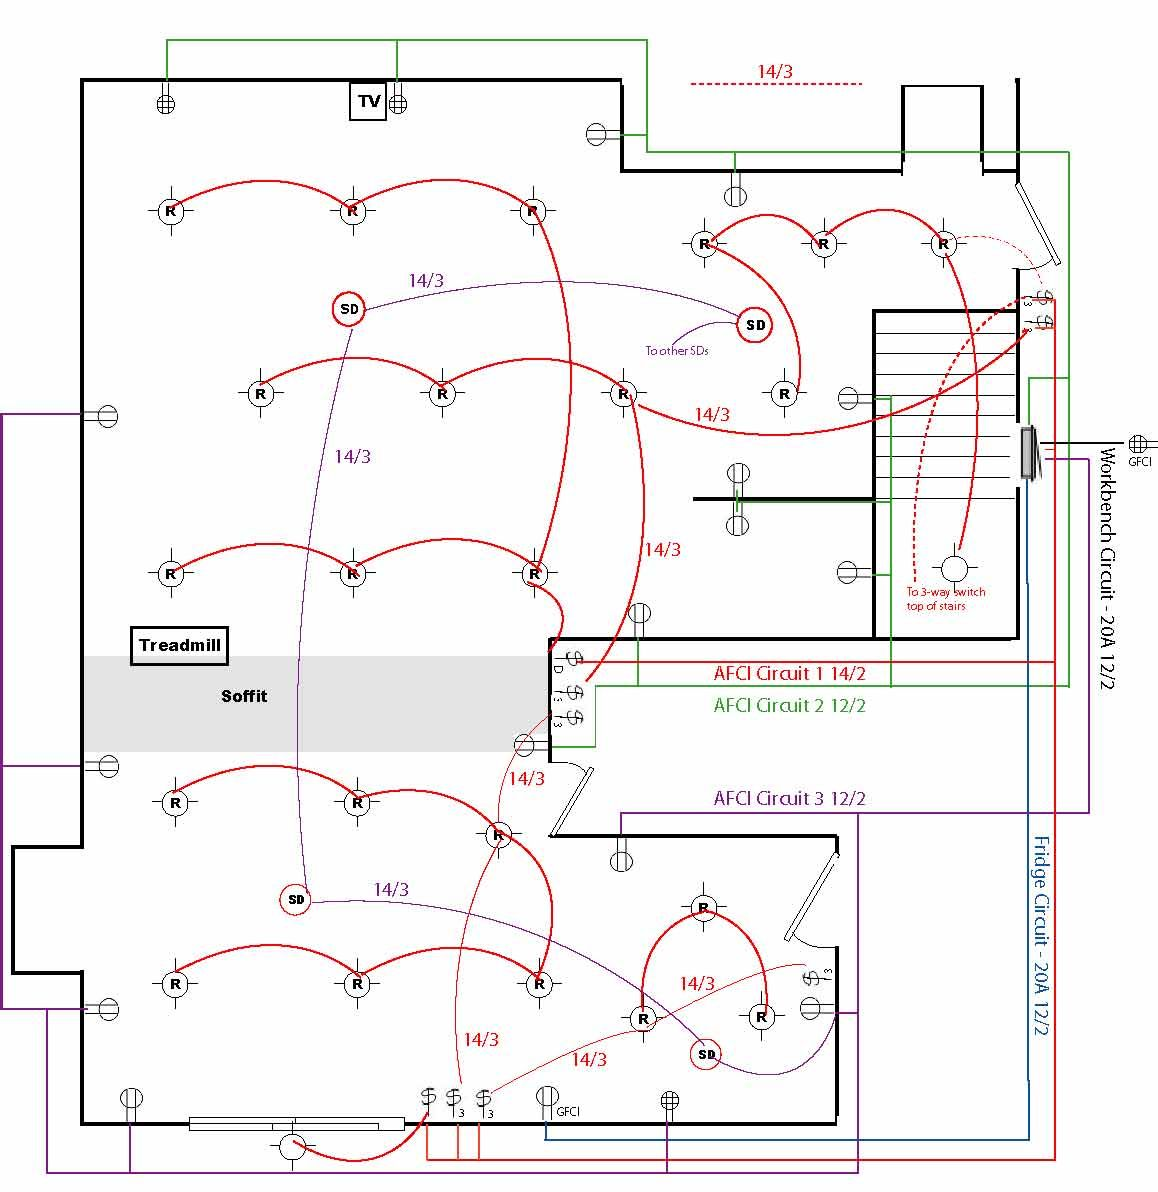 pin by joseph sochalski on homes diagrams pinterest wiring diagram for a house home wiring  sc 1 st  MiFinder : house wiring software free download - yogabreezes.com